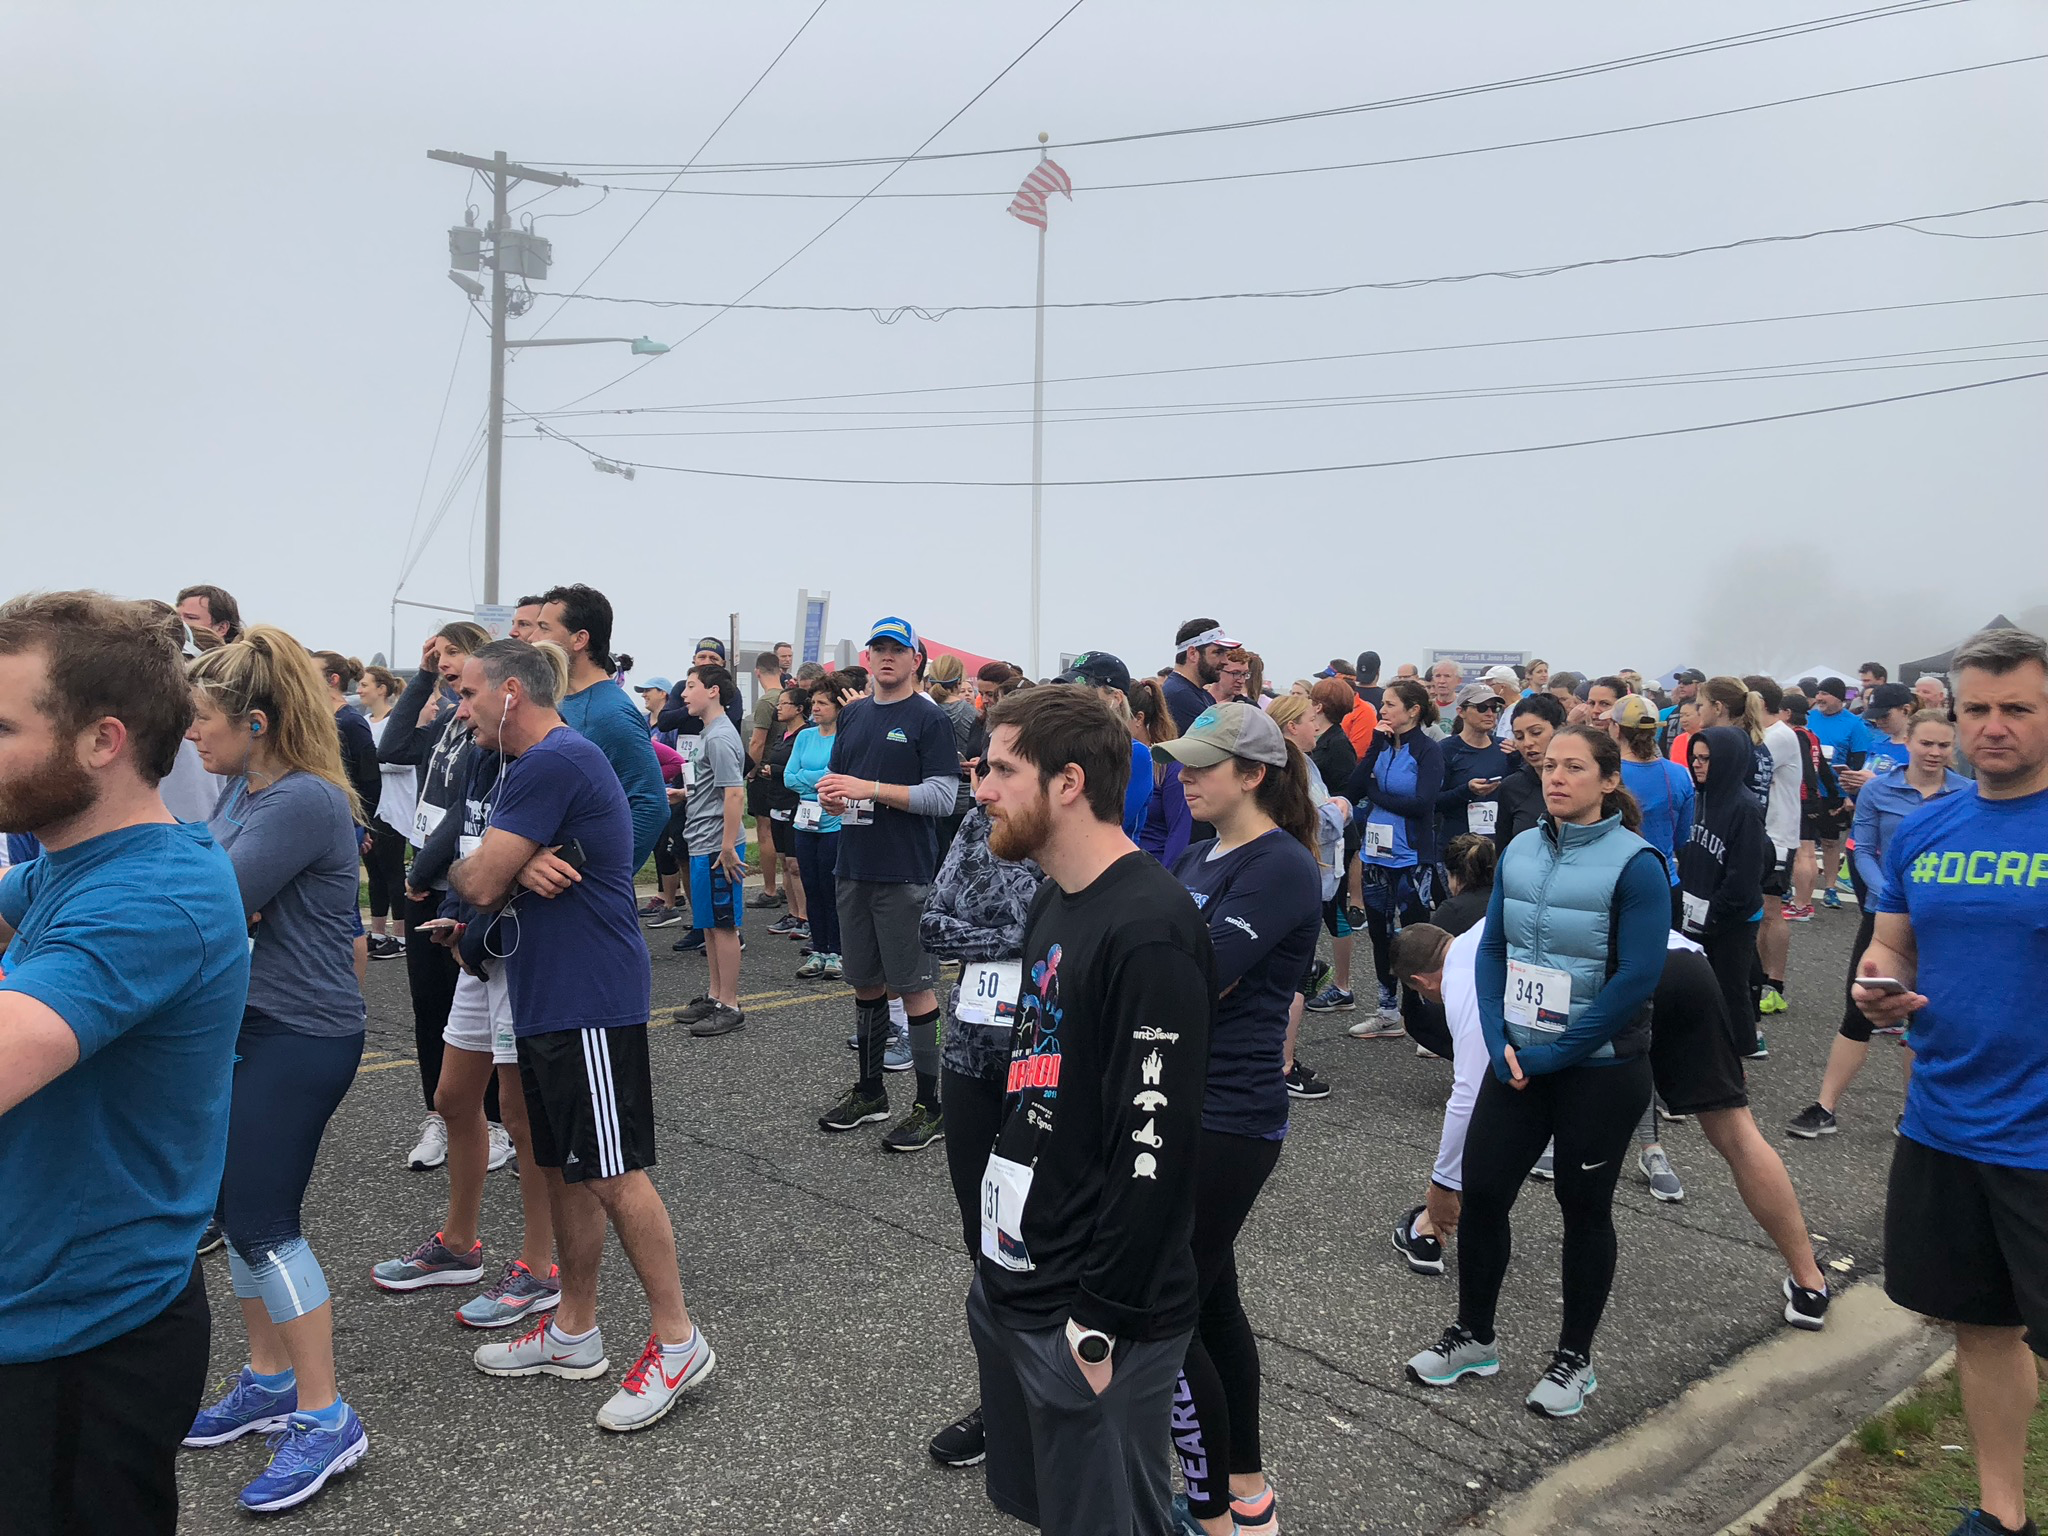 5K Run For The Bay in Sayville Draws 500+ Runners